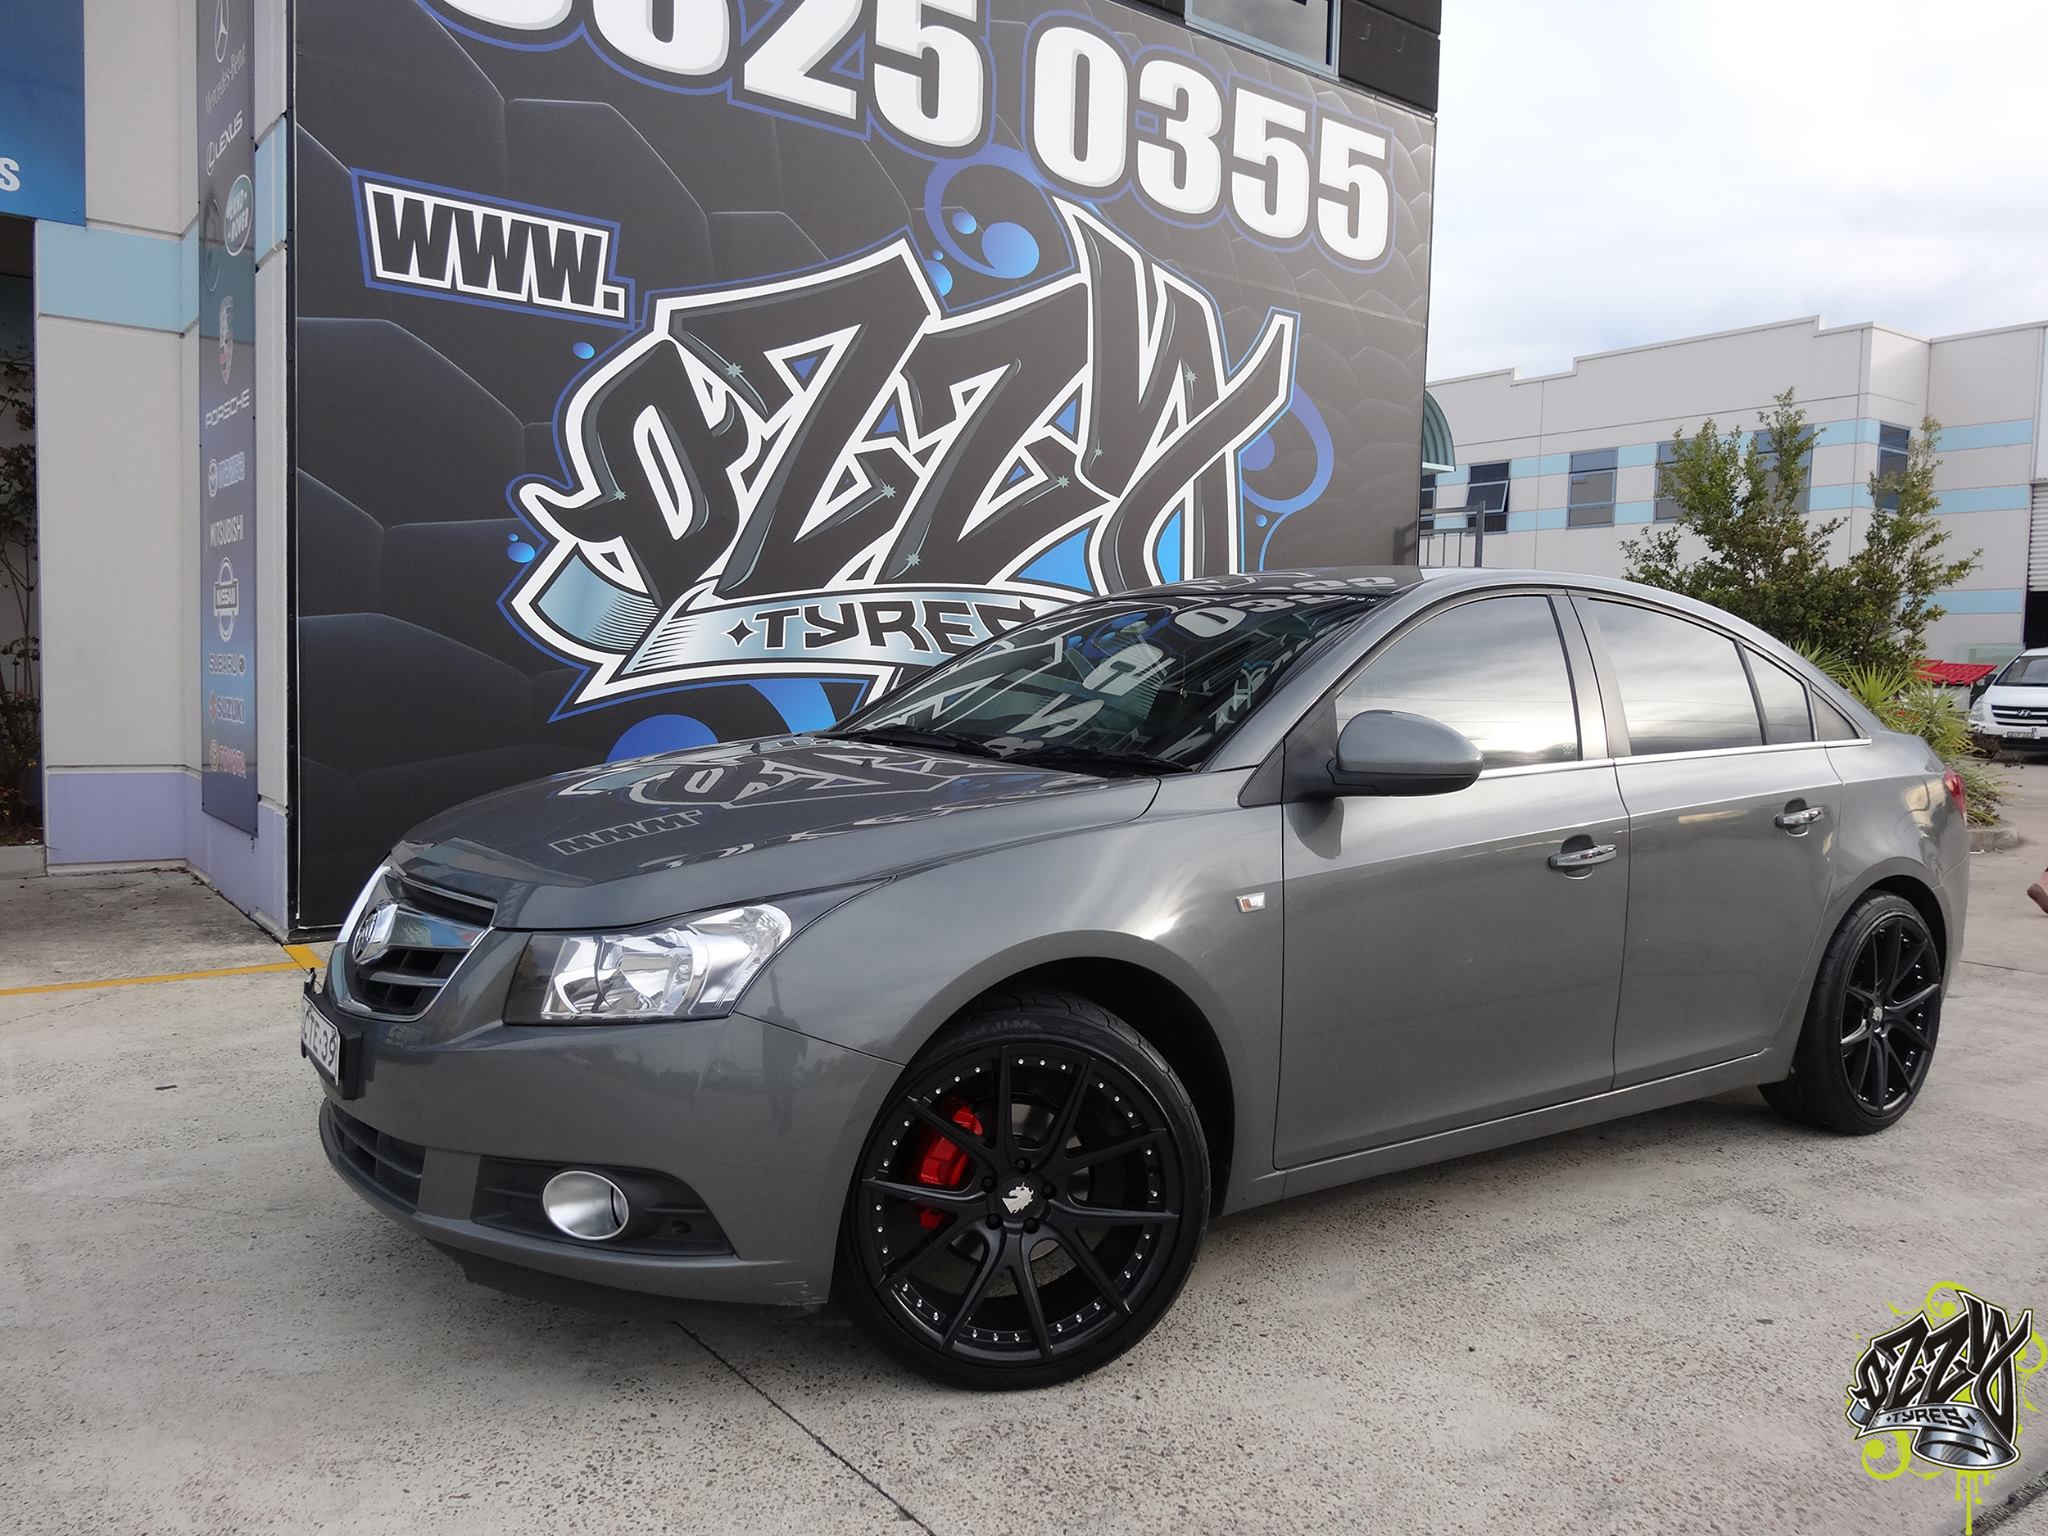 grey-holden-cruze-fitted-with-touchdown-td125